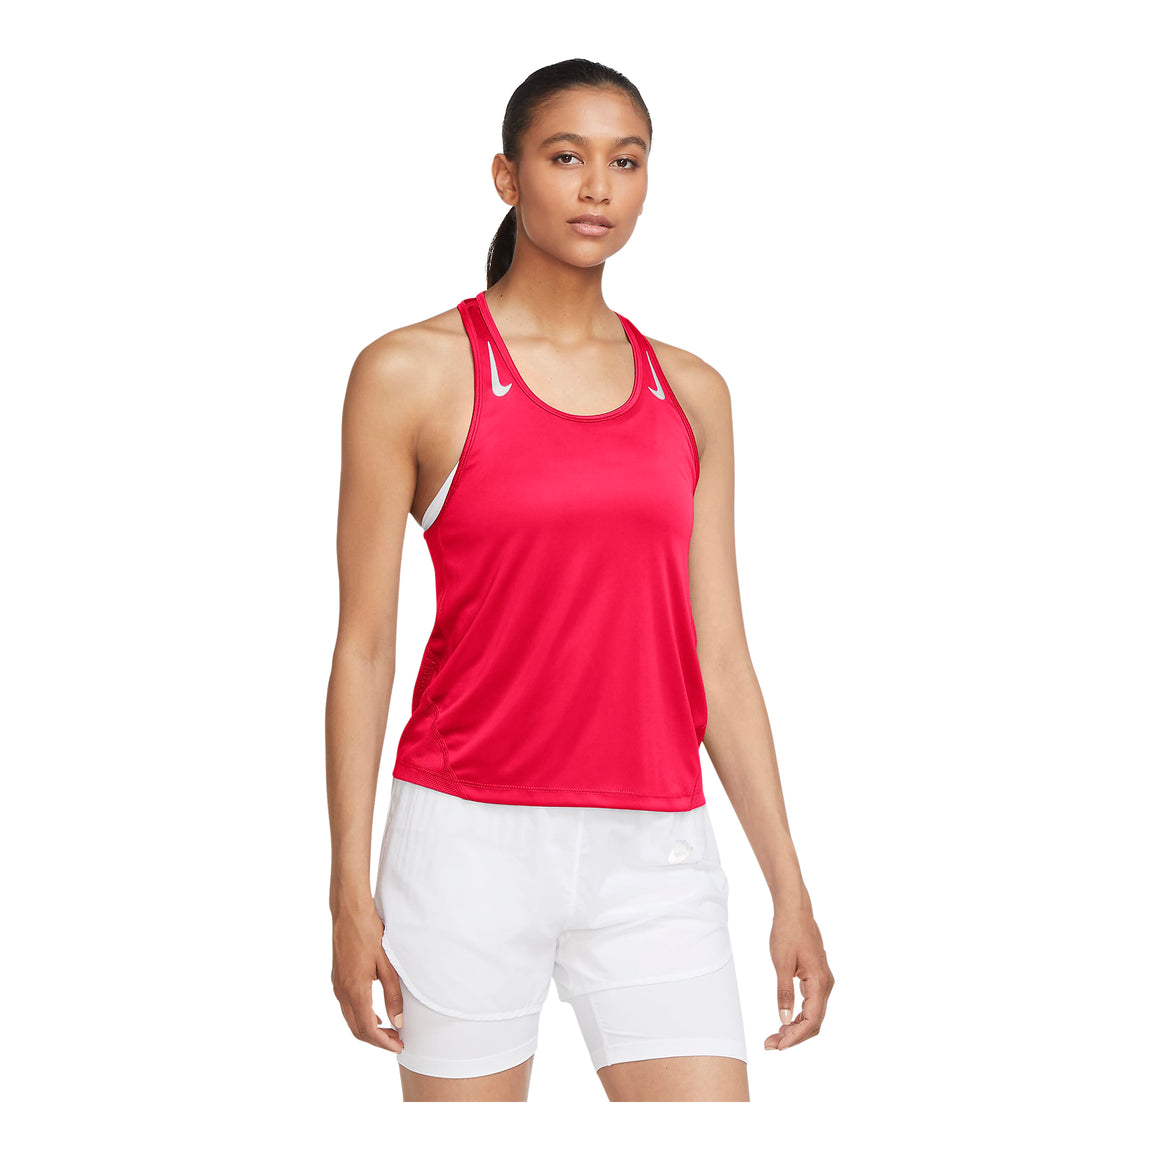 Miler Running Singlet for Women in Bright Crimson/Reflective Silver